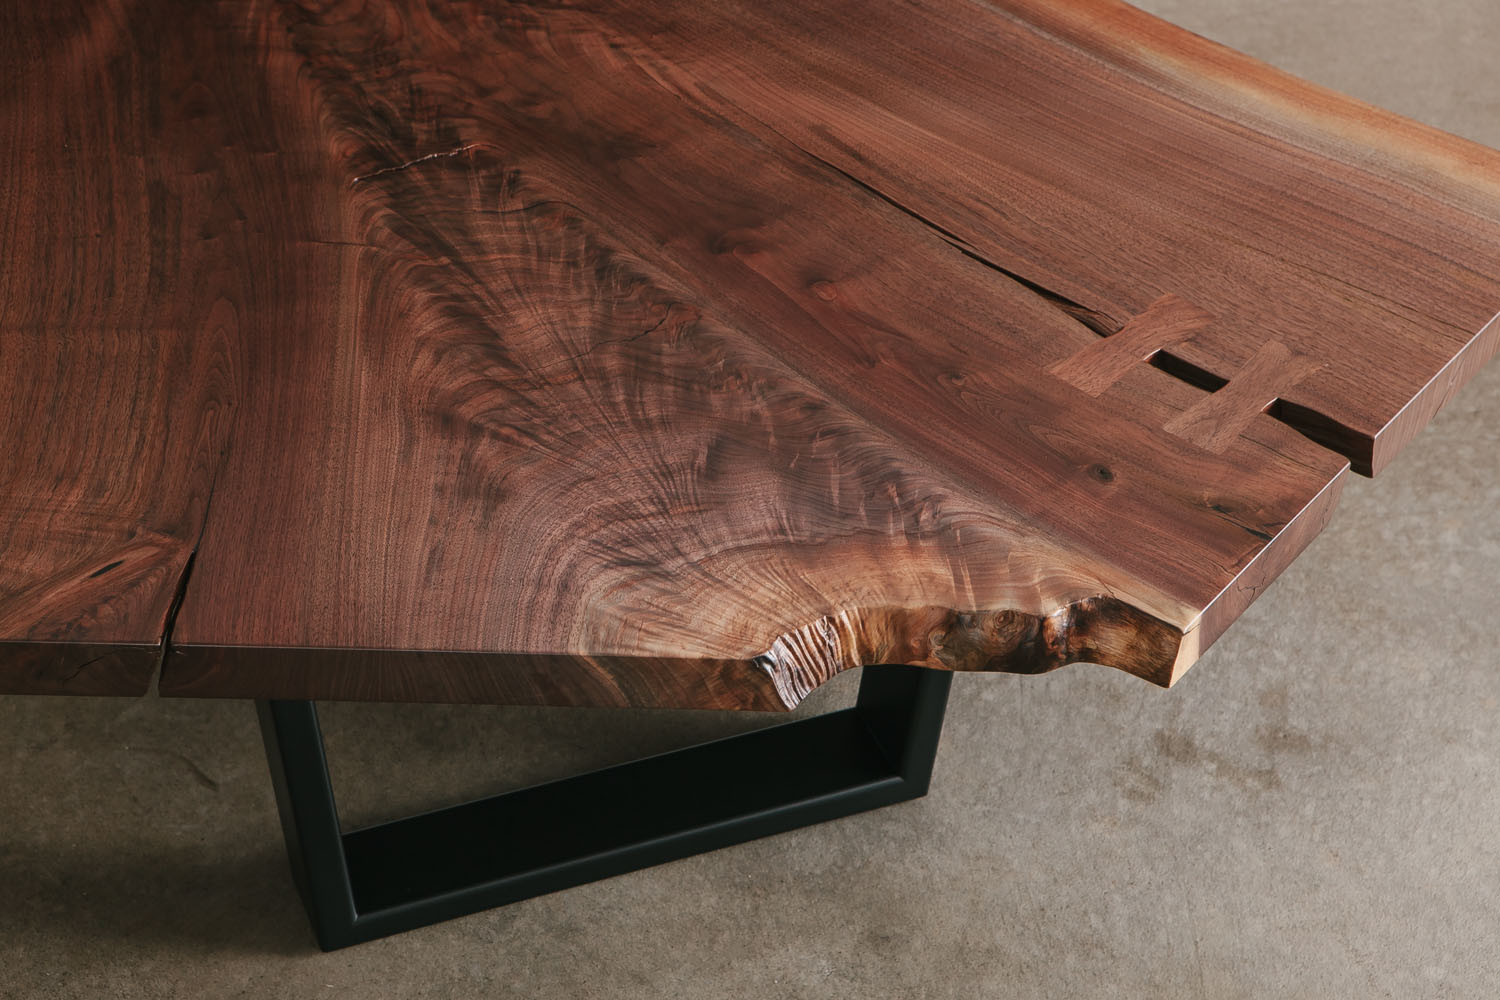 Luxury walnut crotch slab coffee table with natural tree characteristics